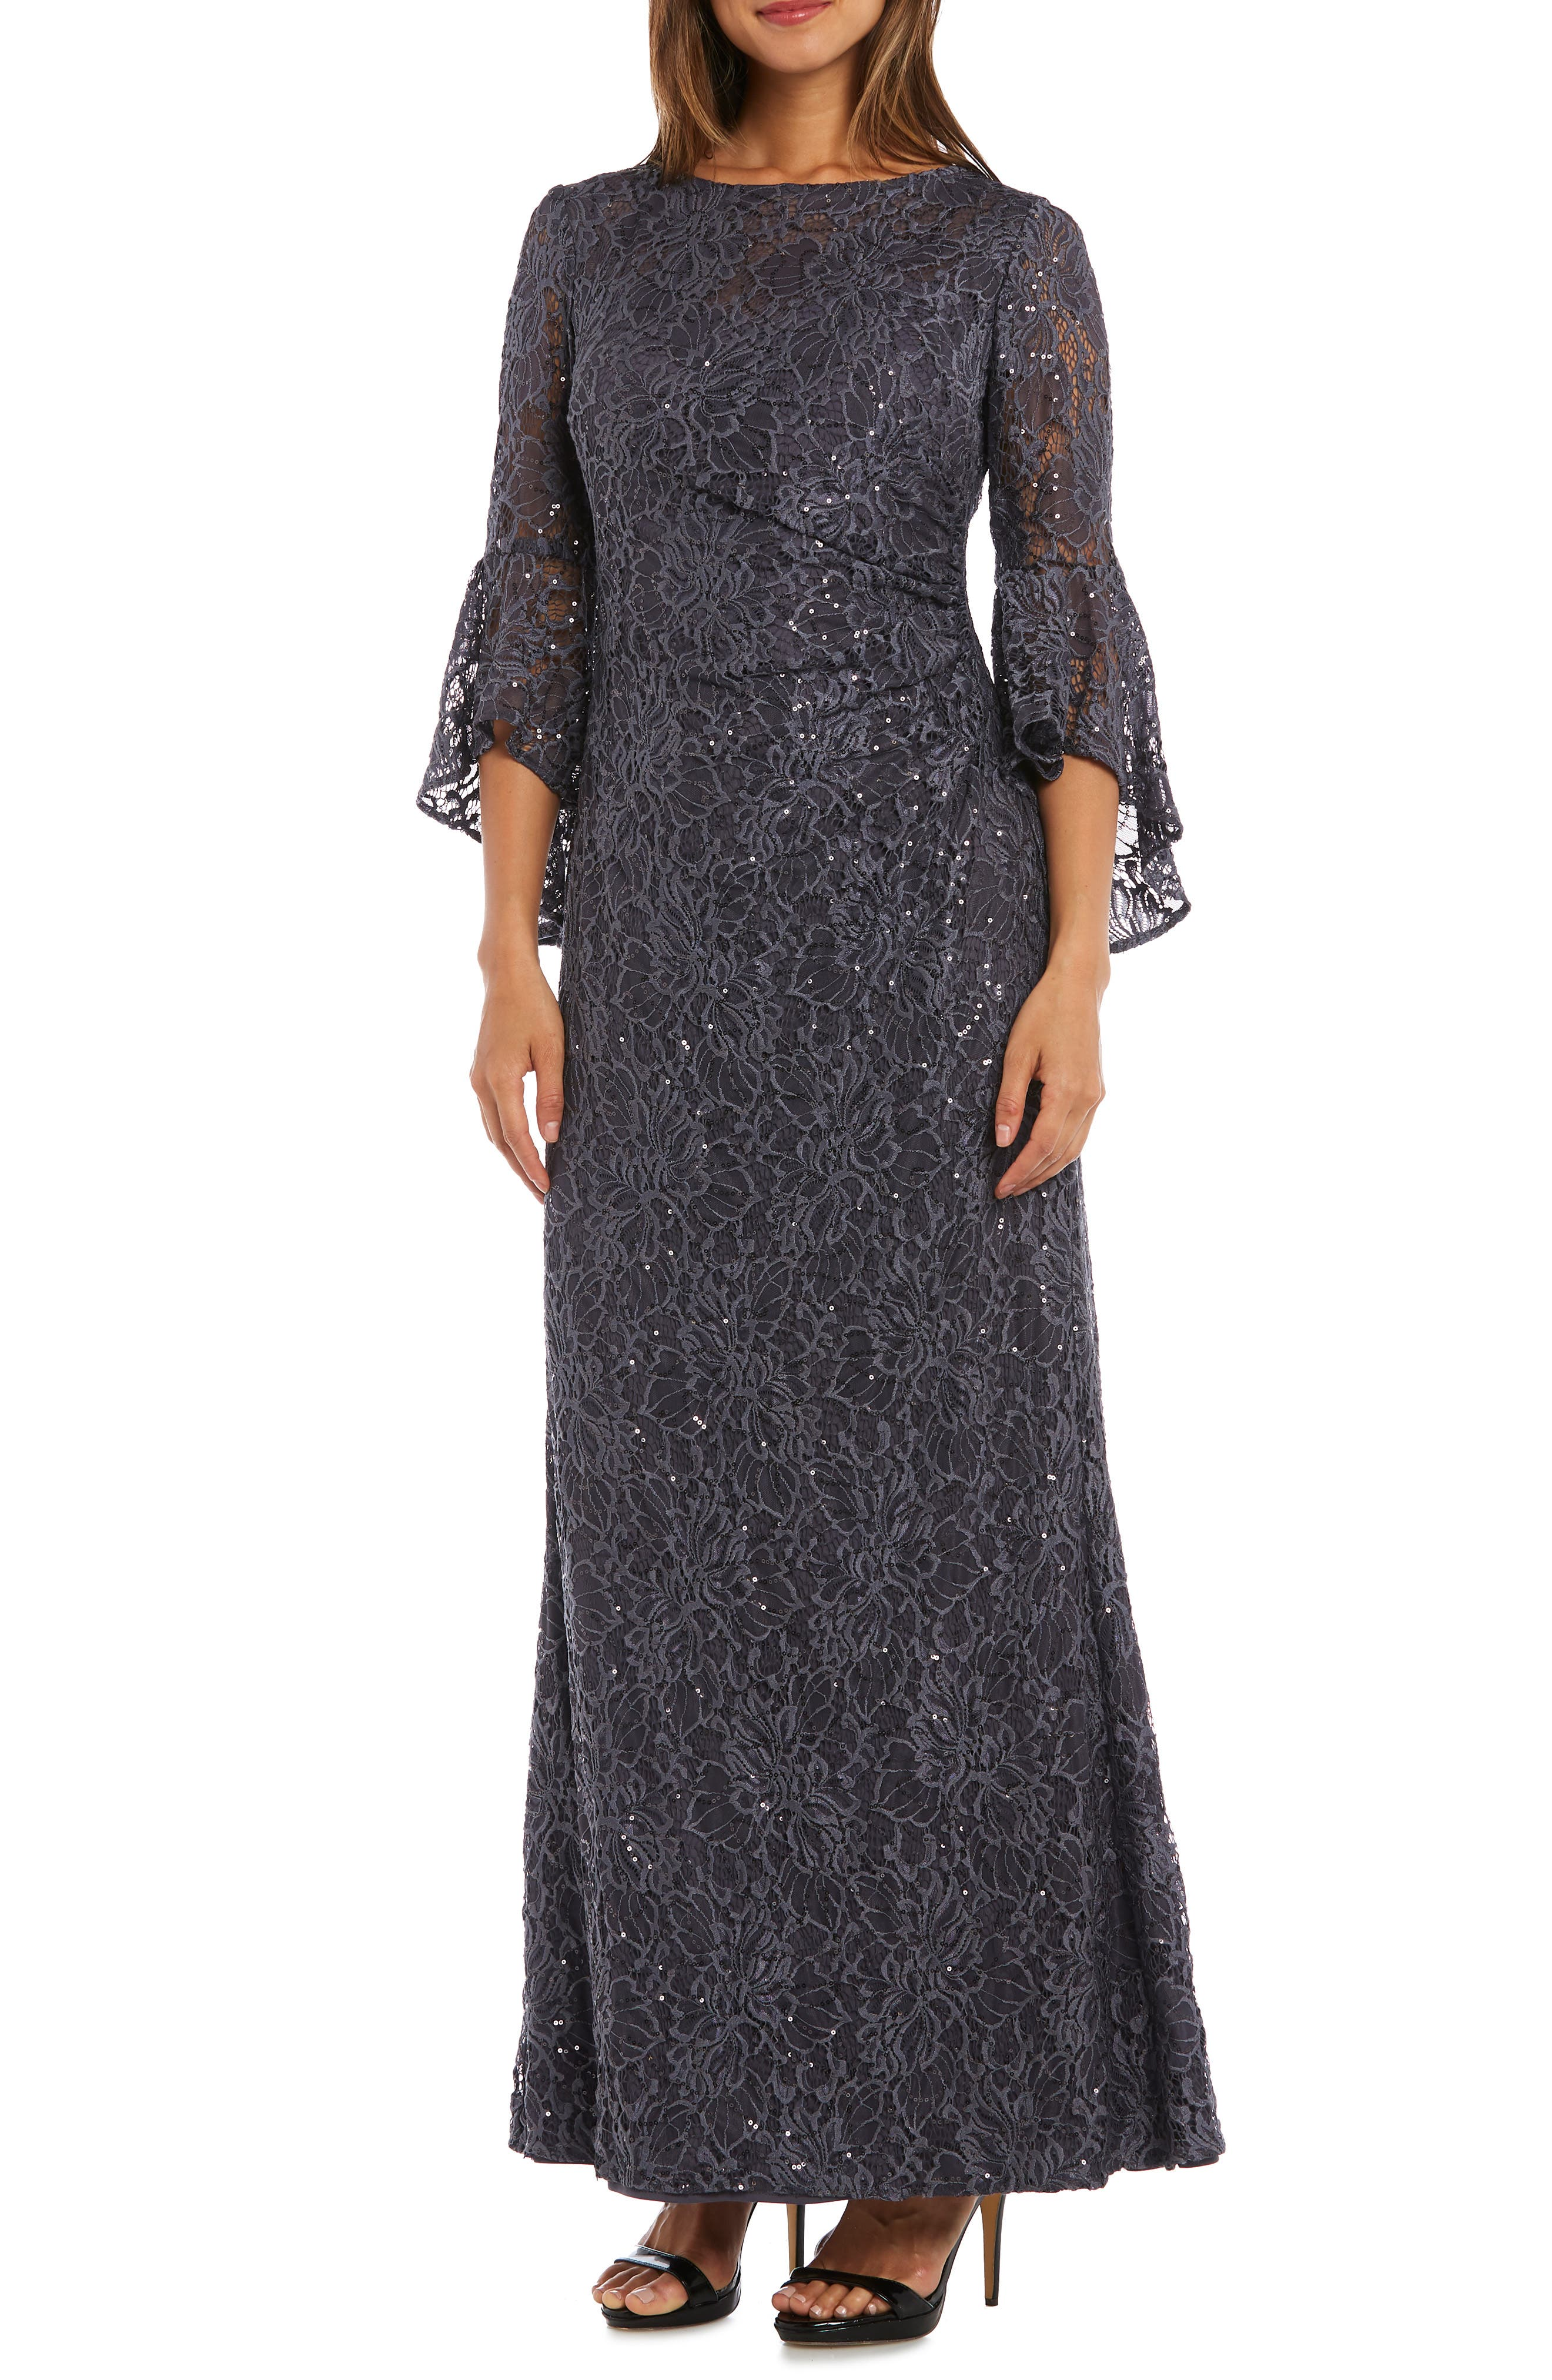 MORGAN & CO. Sequin Embellished Gown, Main, color, CHARCOAL